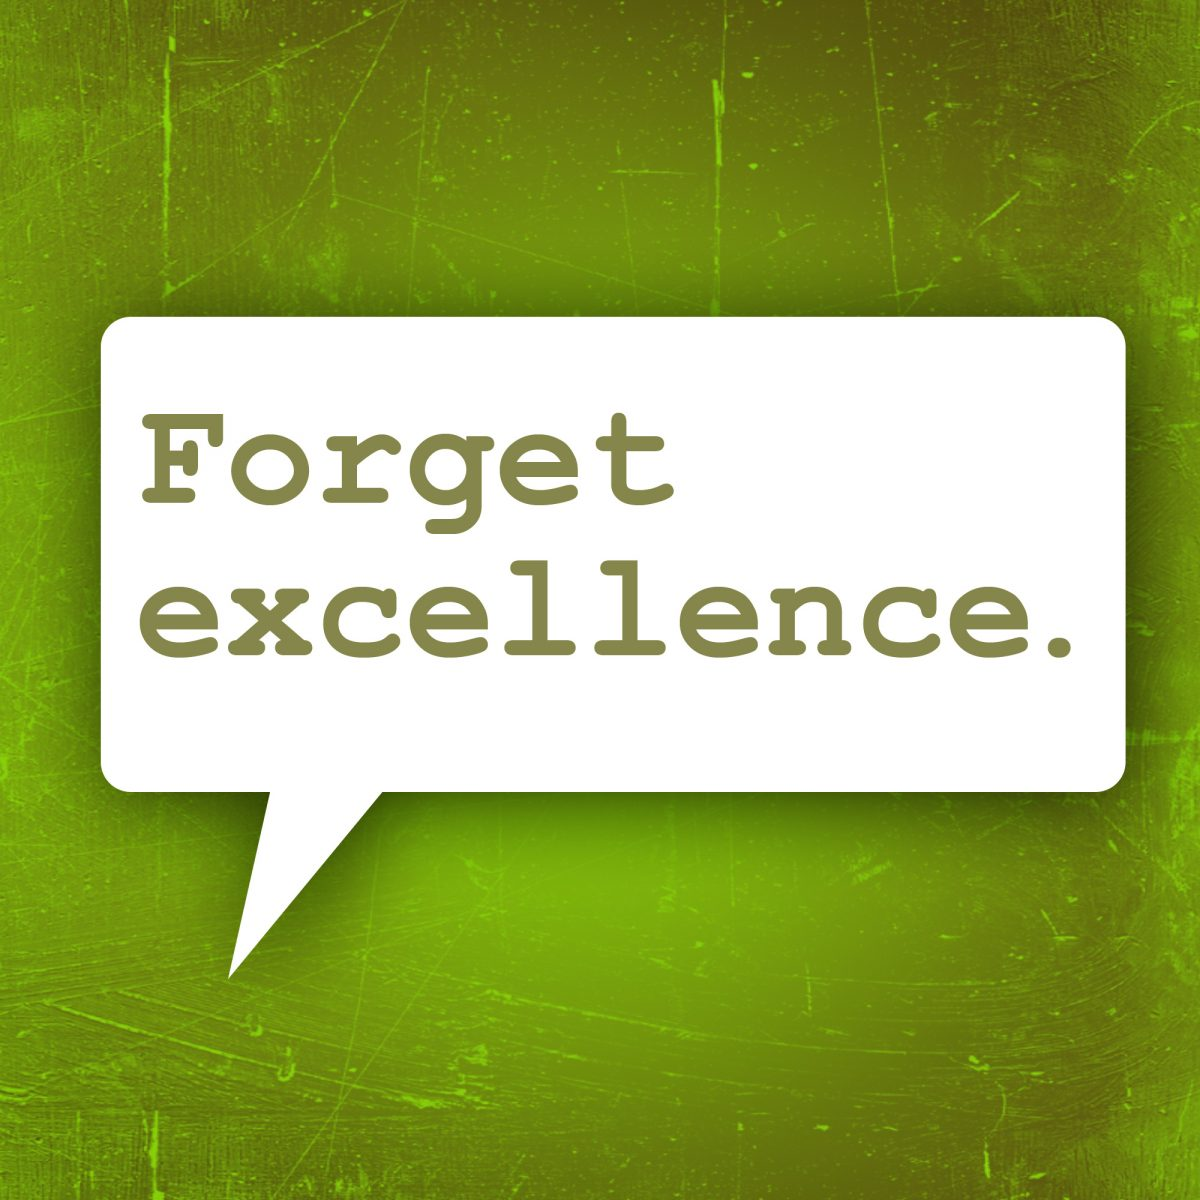 Forget excellence in worship